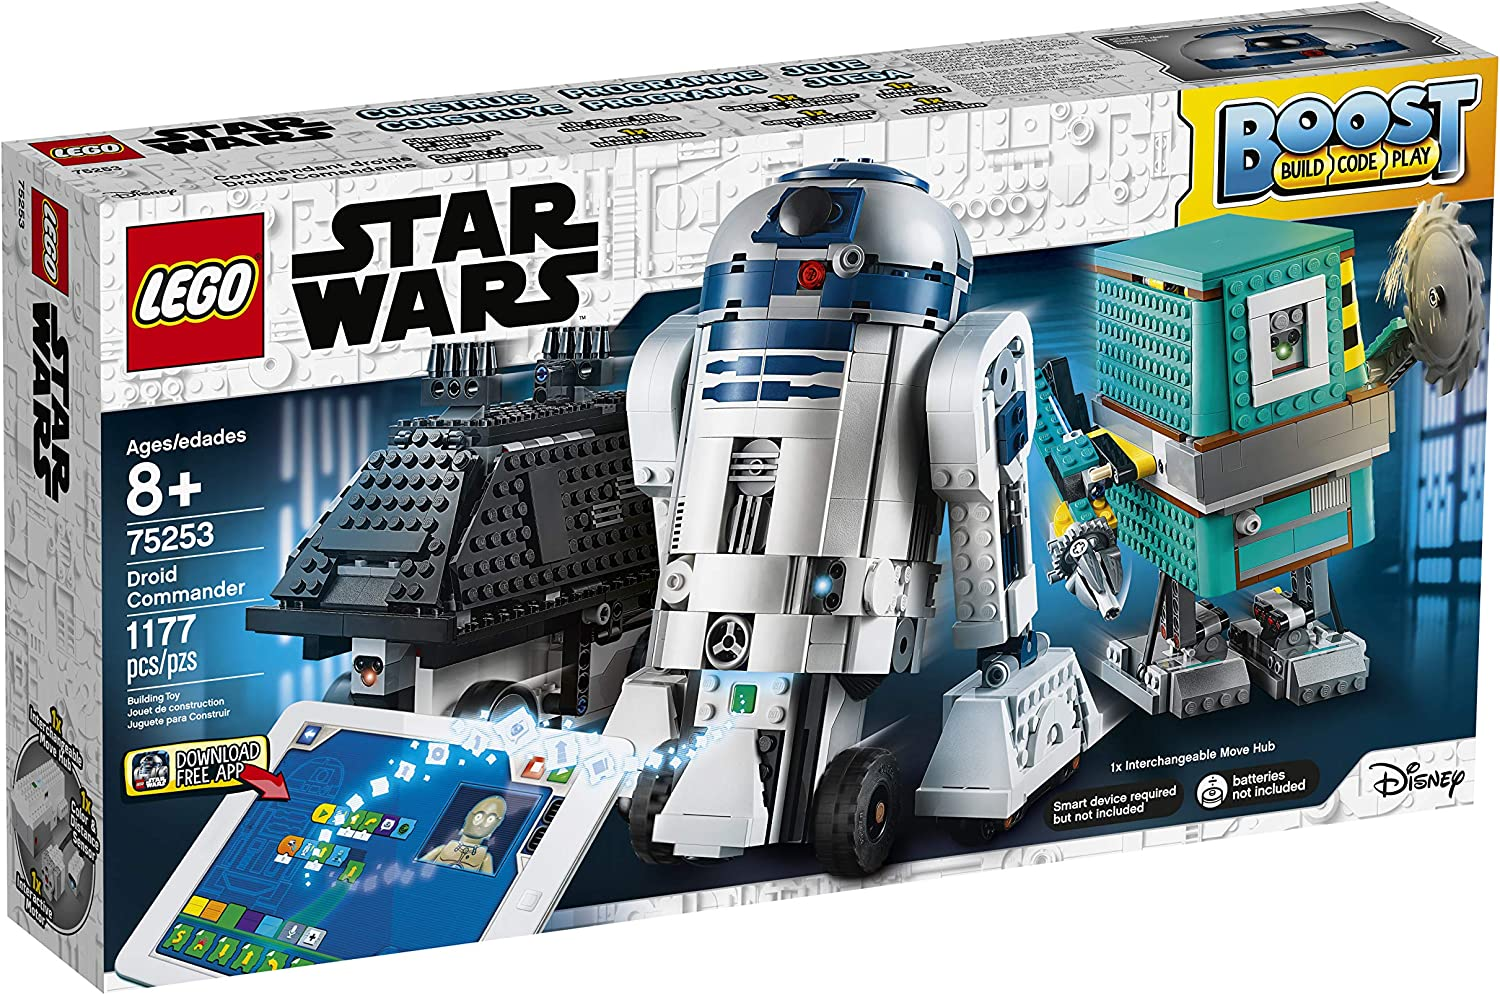 Amazon Lego Deals & Sales: Finding Top Discounts For Your Family